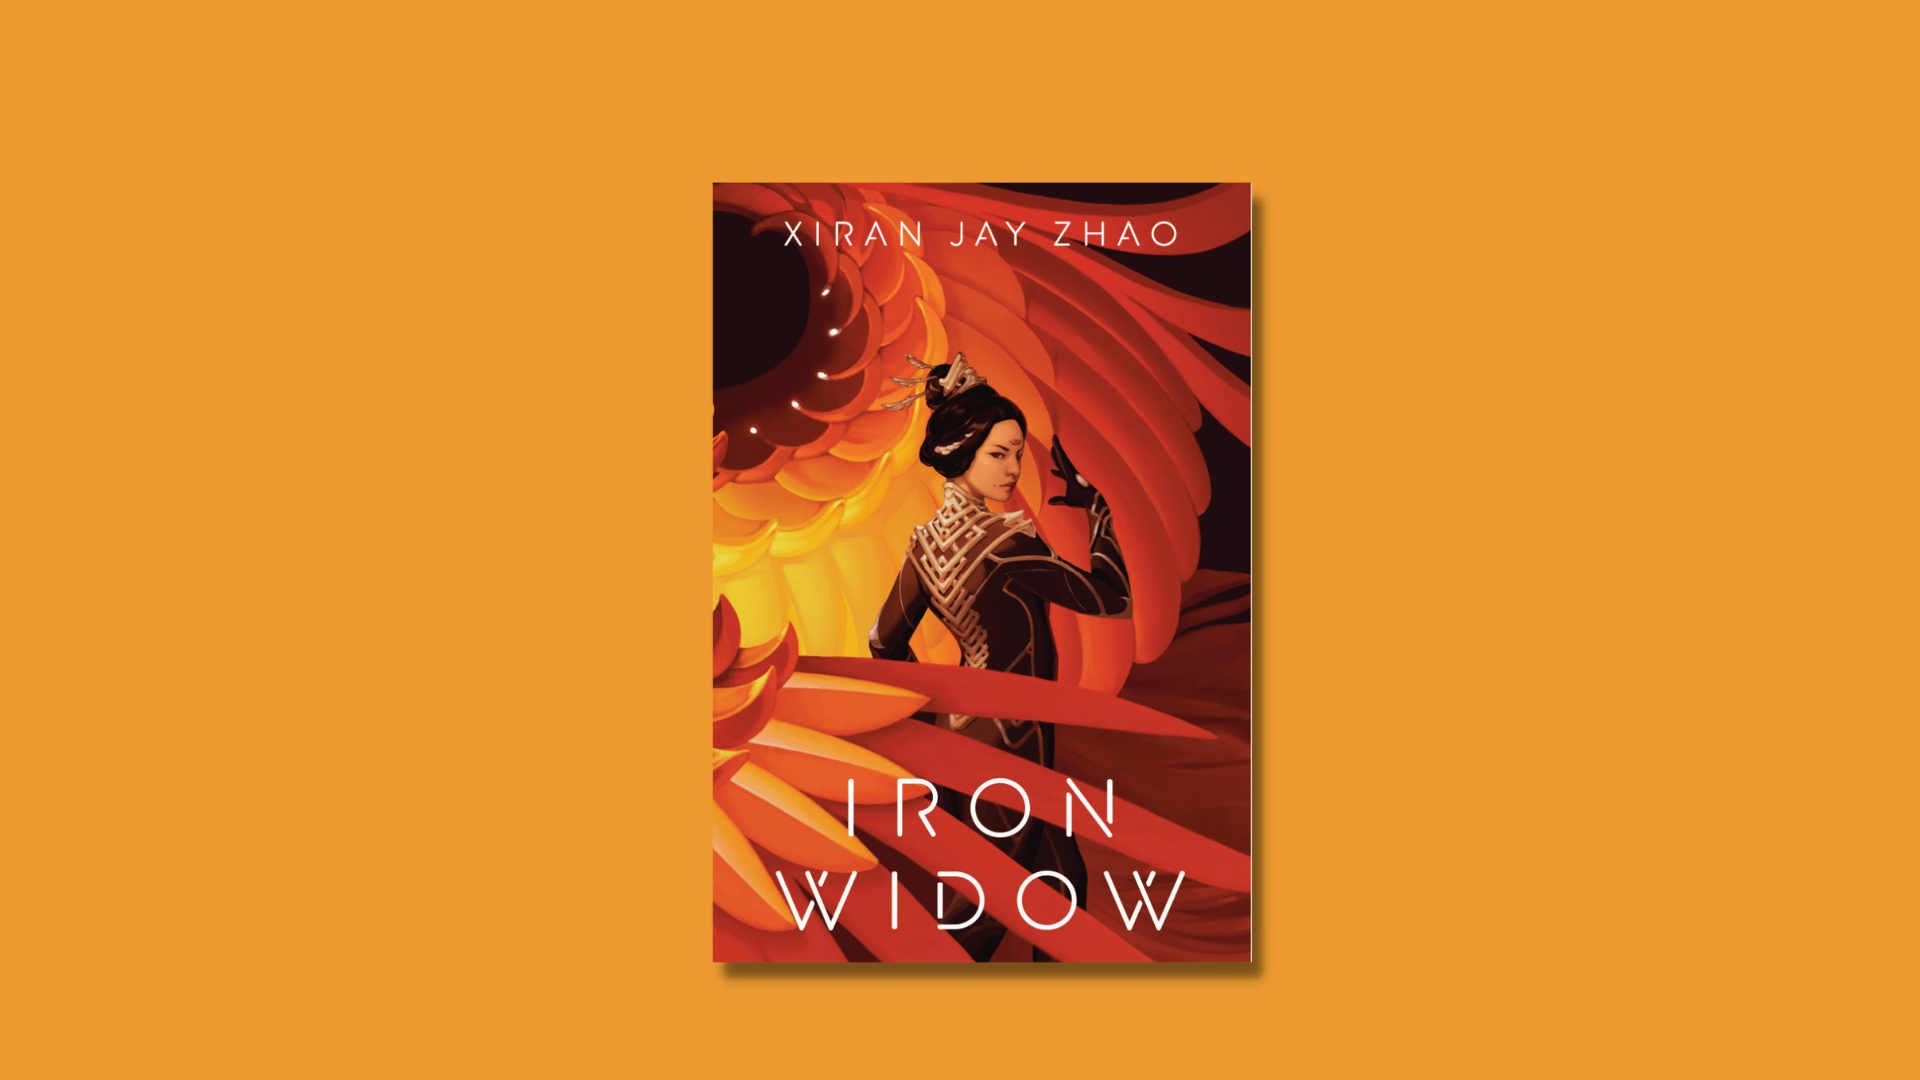 The cover of Iron Widow Xiran Jay Zhao against a yellow/orange background